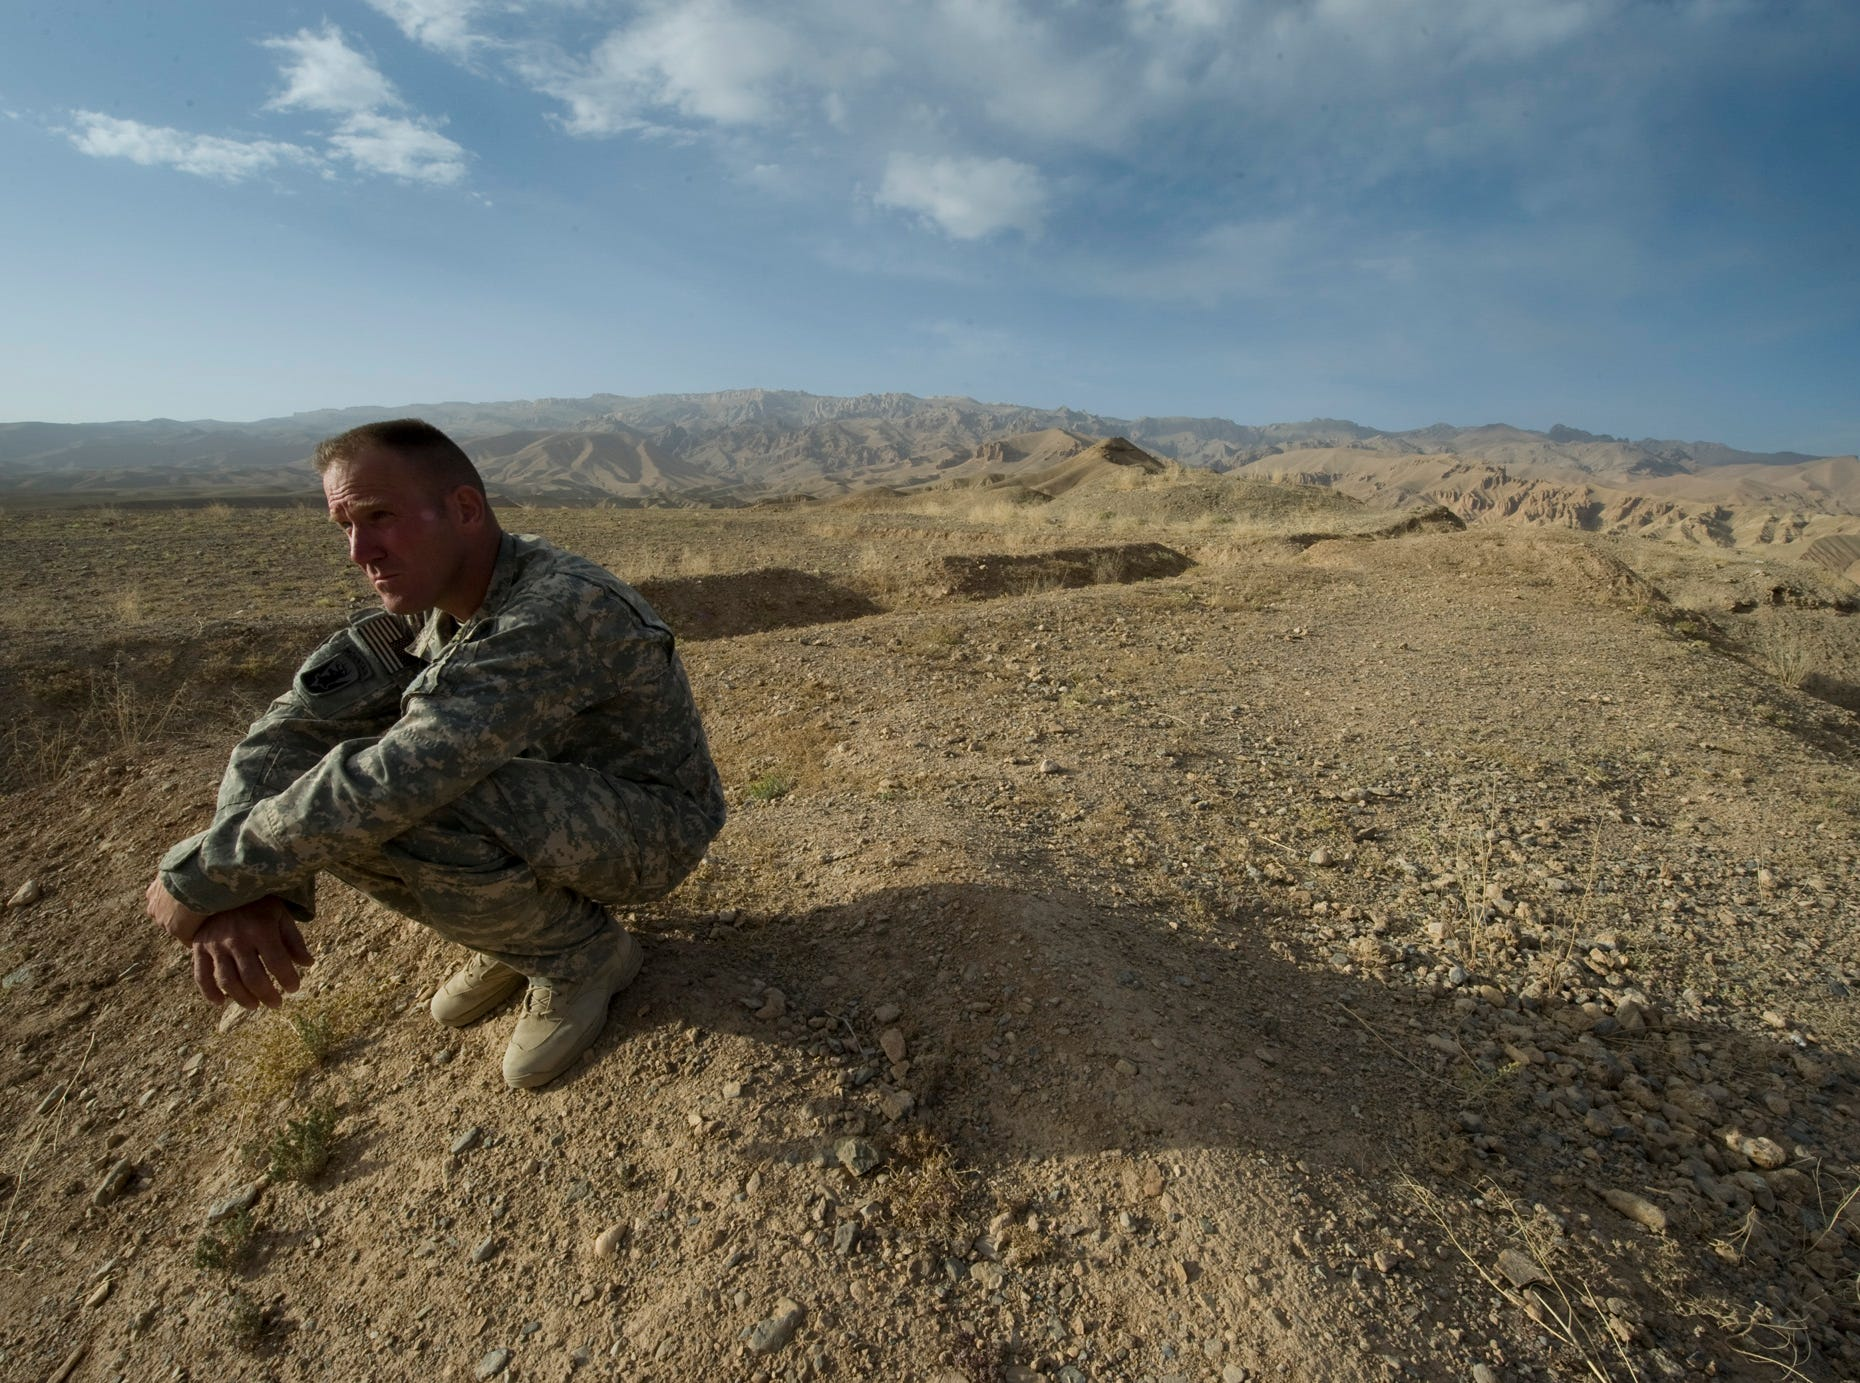 Vermont National Guard Sgt. Maj. Neil Roberts of Fairfax, Vt., sits on top of Band-e-Amir at the foot hills of the Hindu Kush Mountains in Bamian City in central Afghanistan on Friday, September 10, 2010. The surrounding area is littered with land mines left by the Russians when they occupied the area. A narrow goat path threading the mine field provides access to the top.